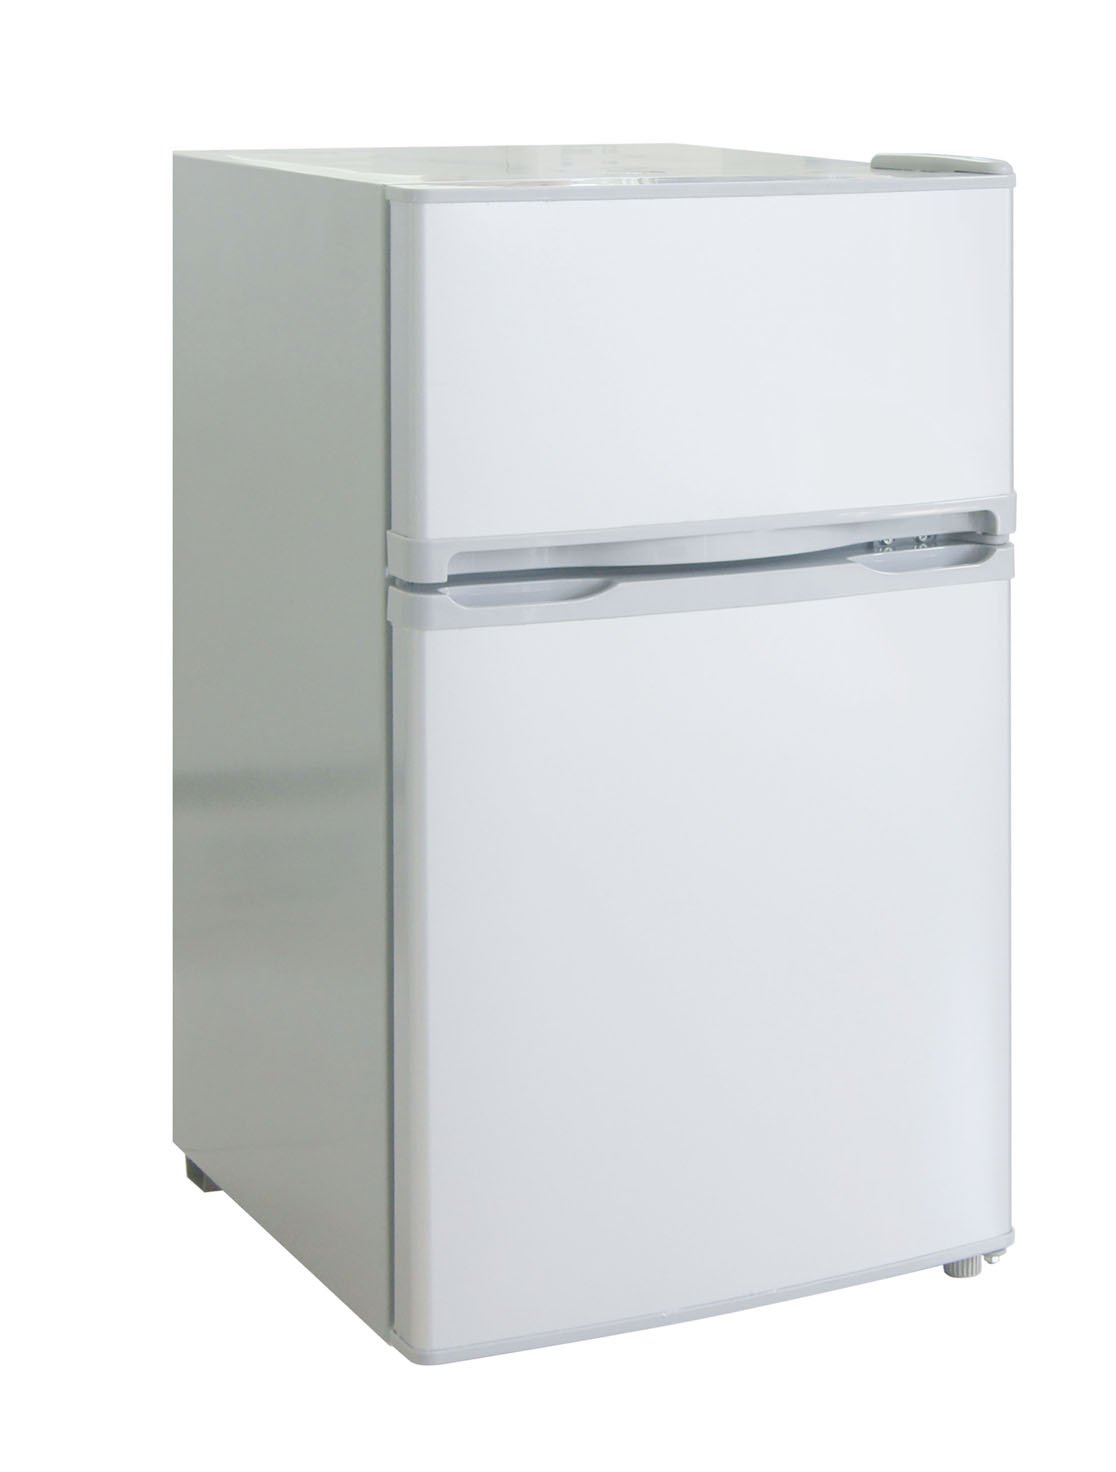 RCA-Igloo 3.2 Cubic Foot 2 Door Fridge and Freezer, White by RCA